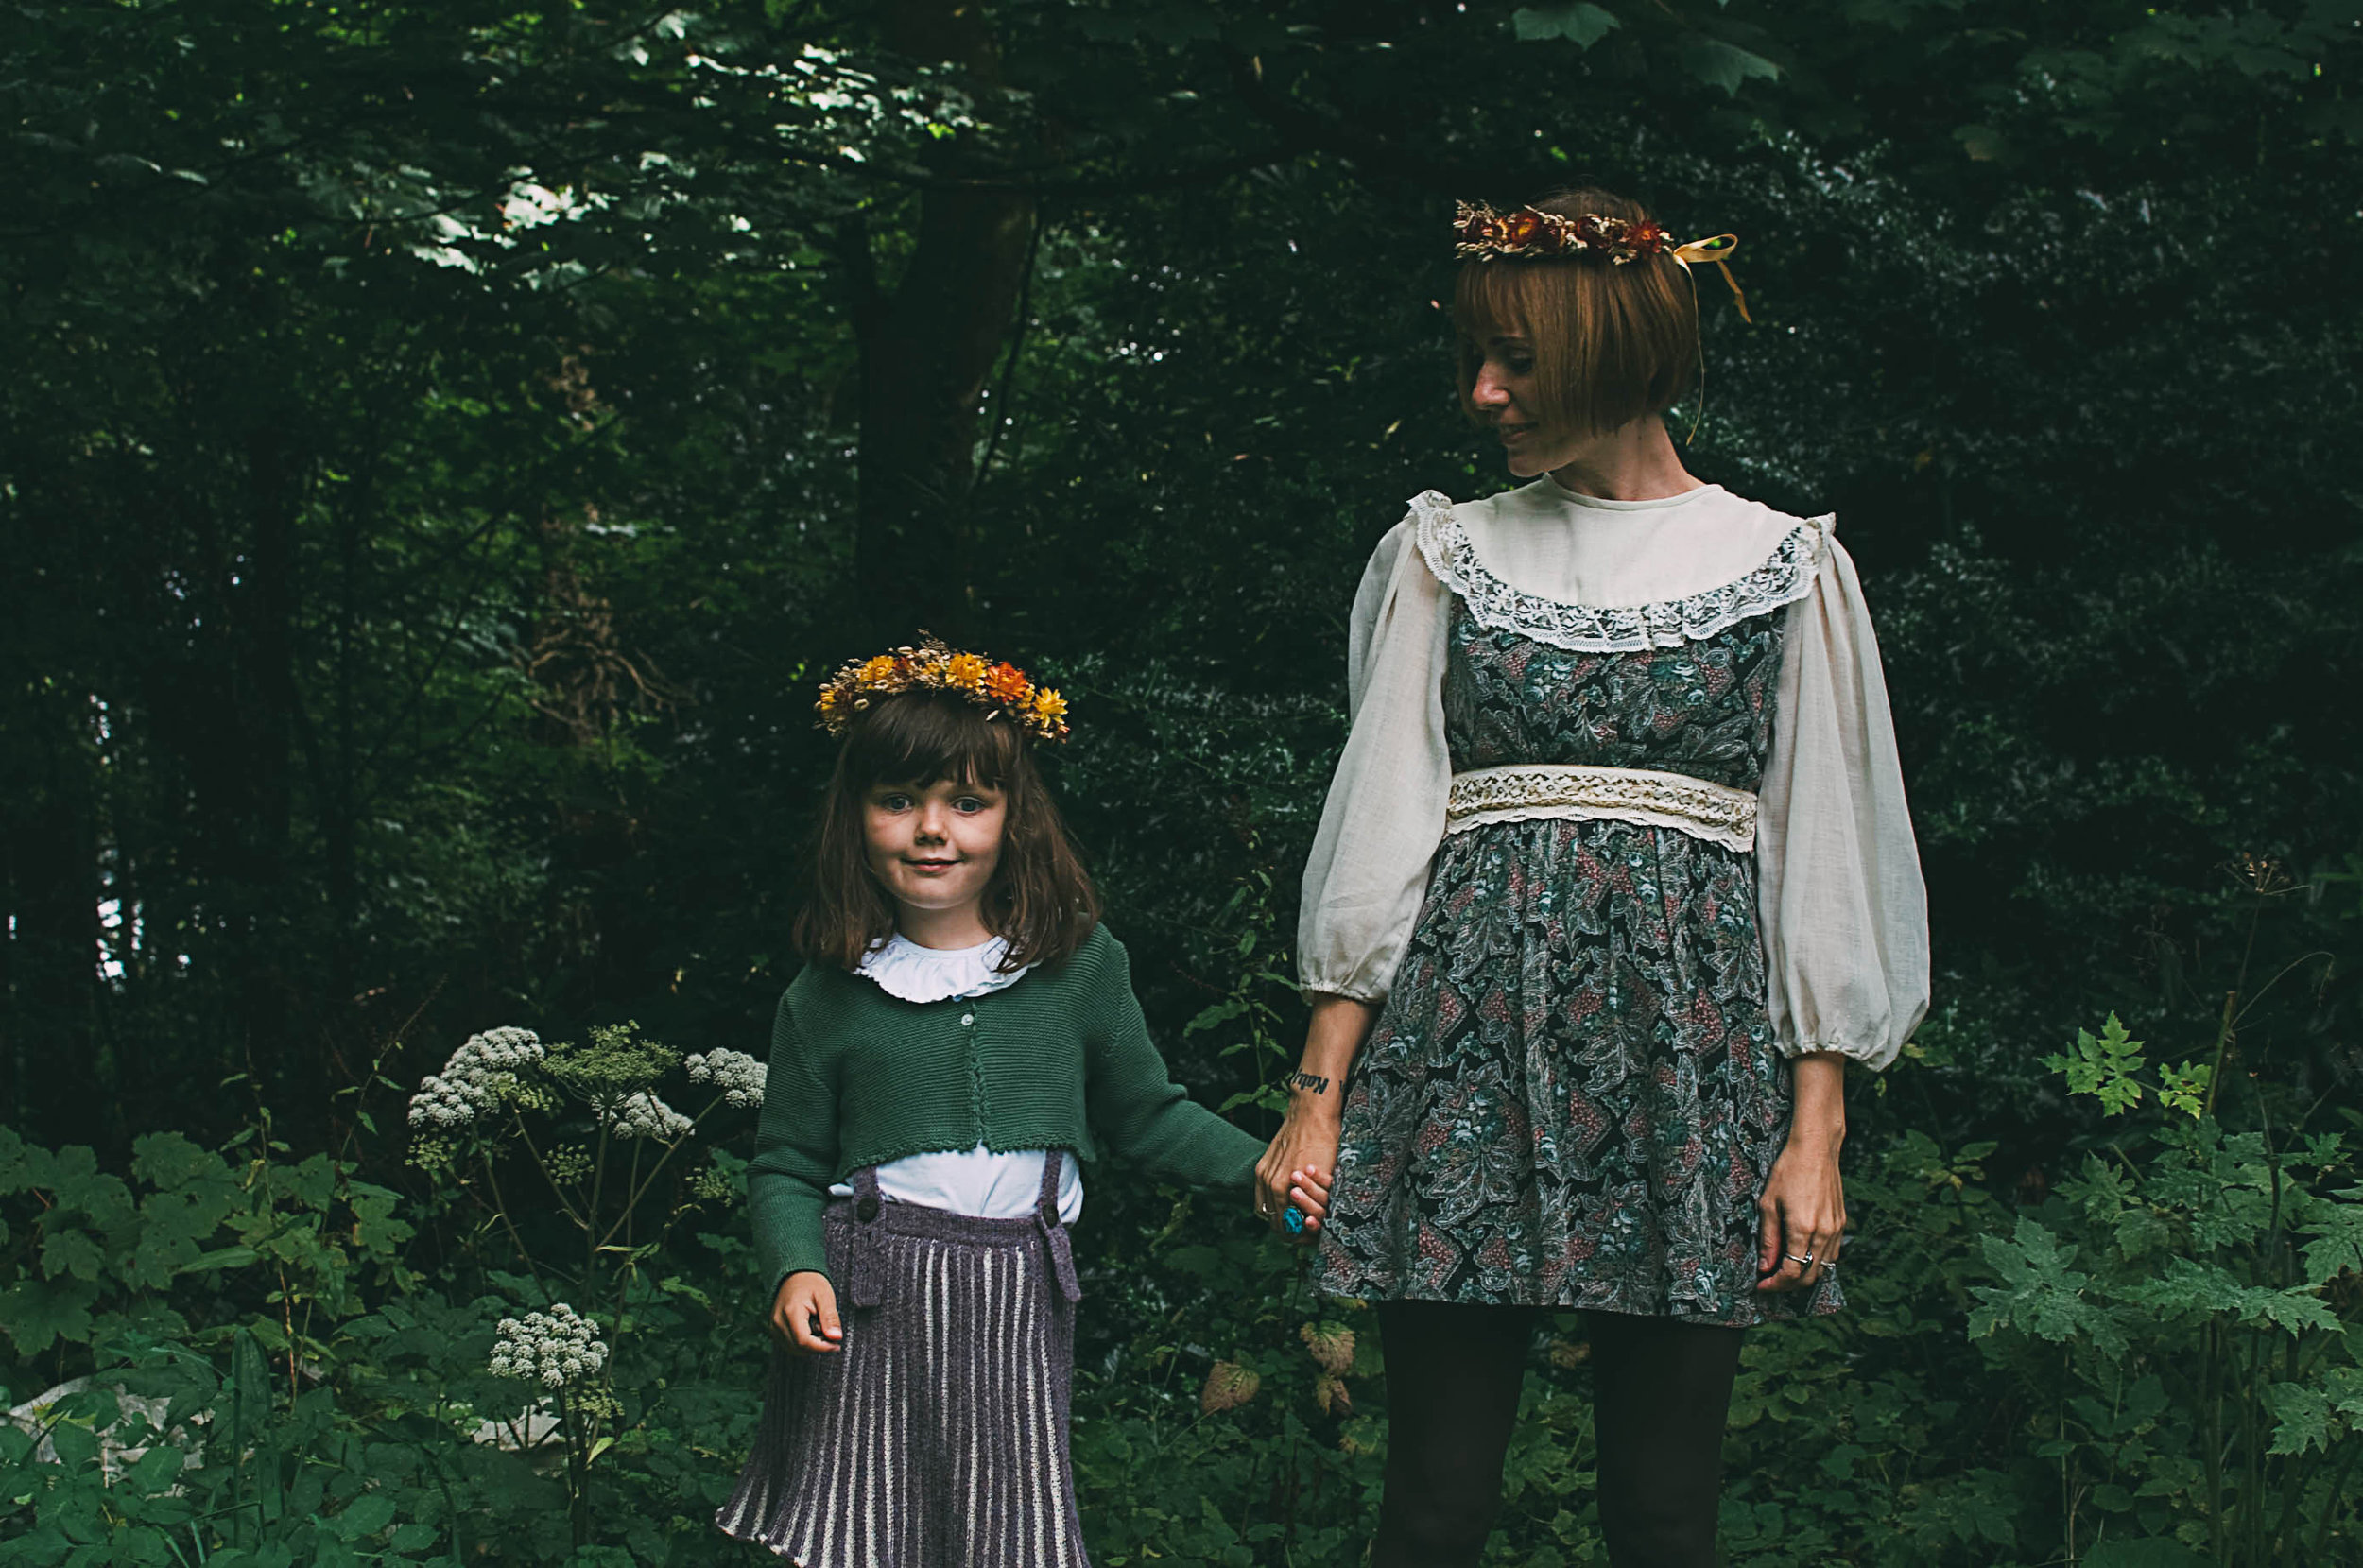 Lulu with her cherub Immy, wearing flowers crowns from Botanical Tales